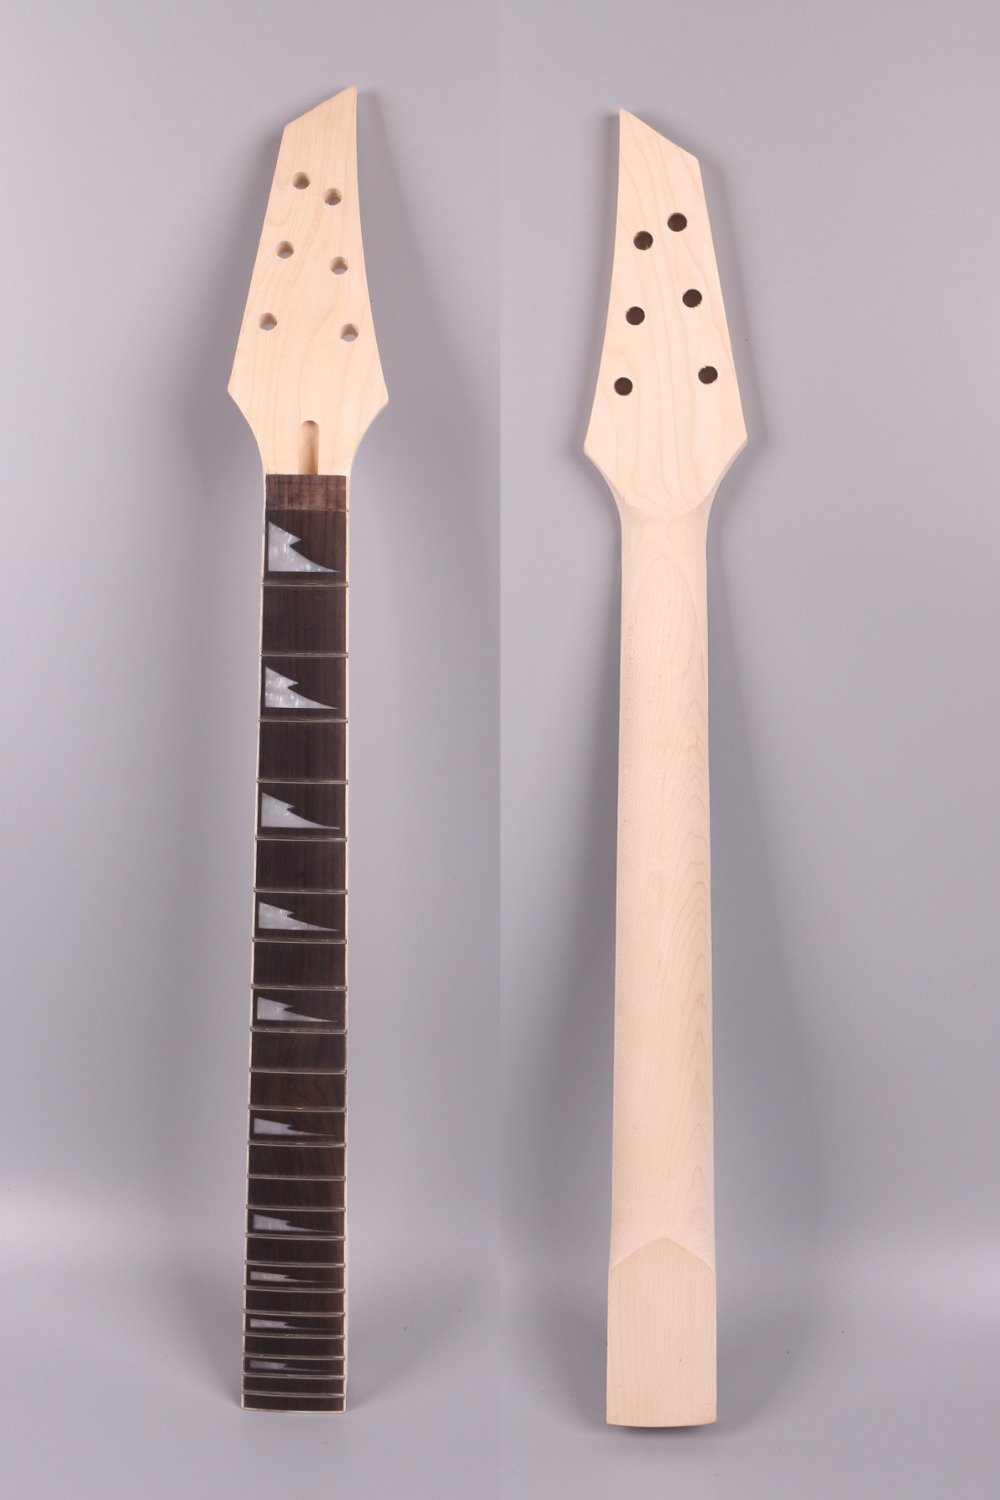 electric guitar neck 22 fret 25.5'' maple Locking nut JKX style yinfente 2 maple guitar neck 22 fret full fret job nut neck for st tl replacement with nut 42